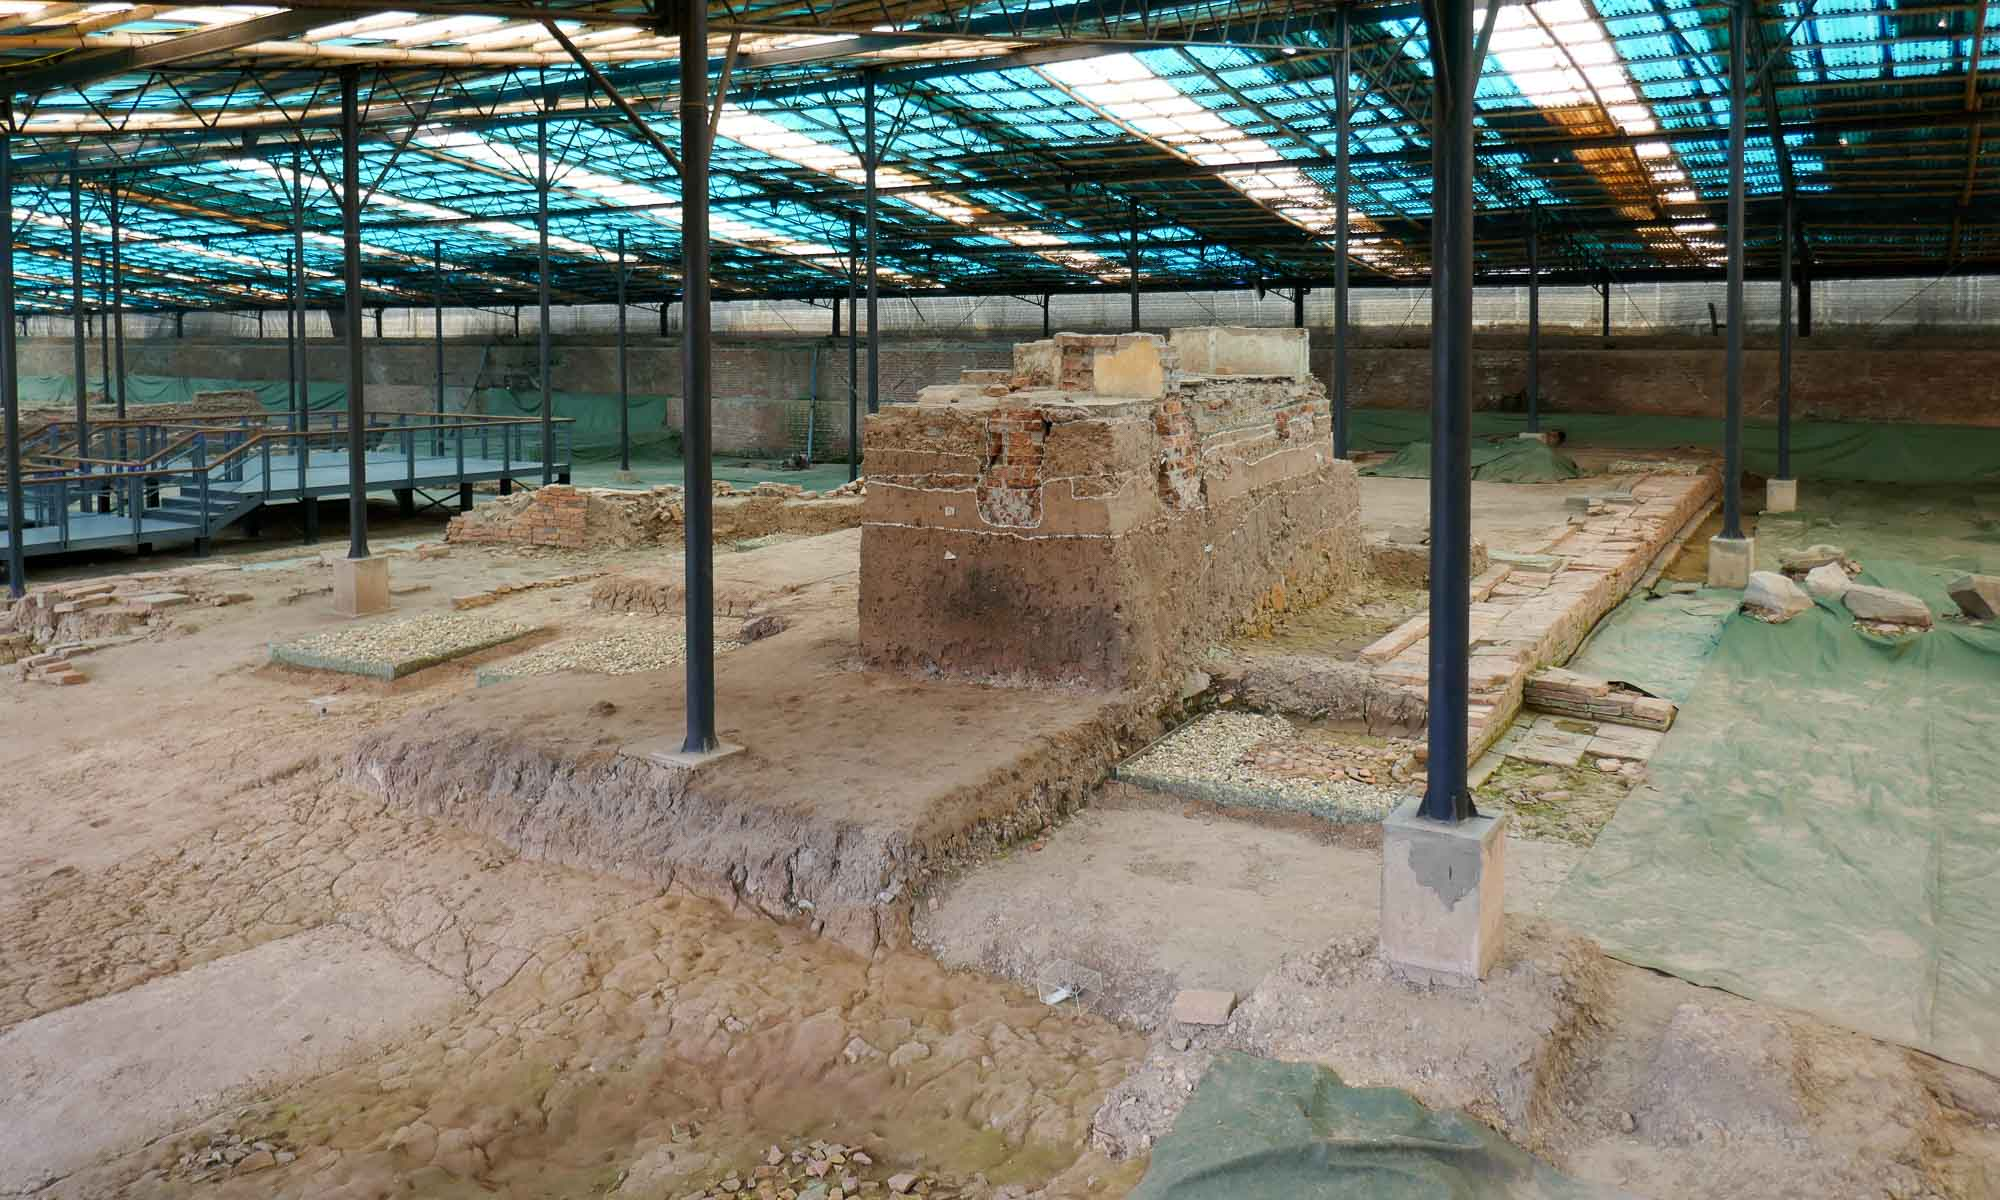 Part of the archaeological site